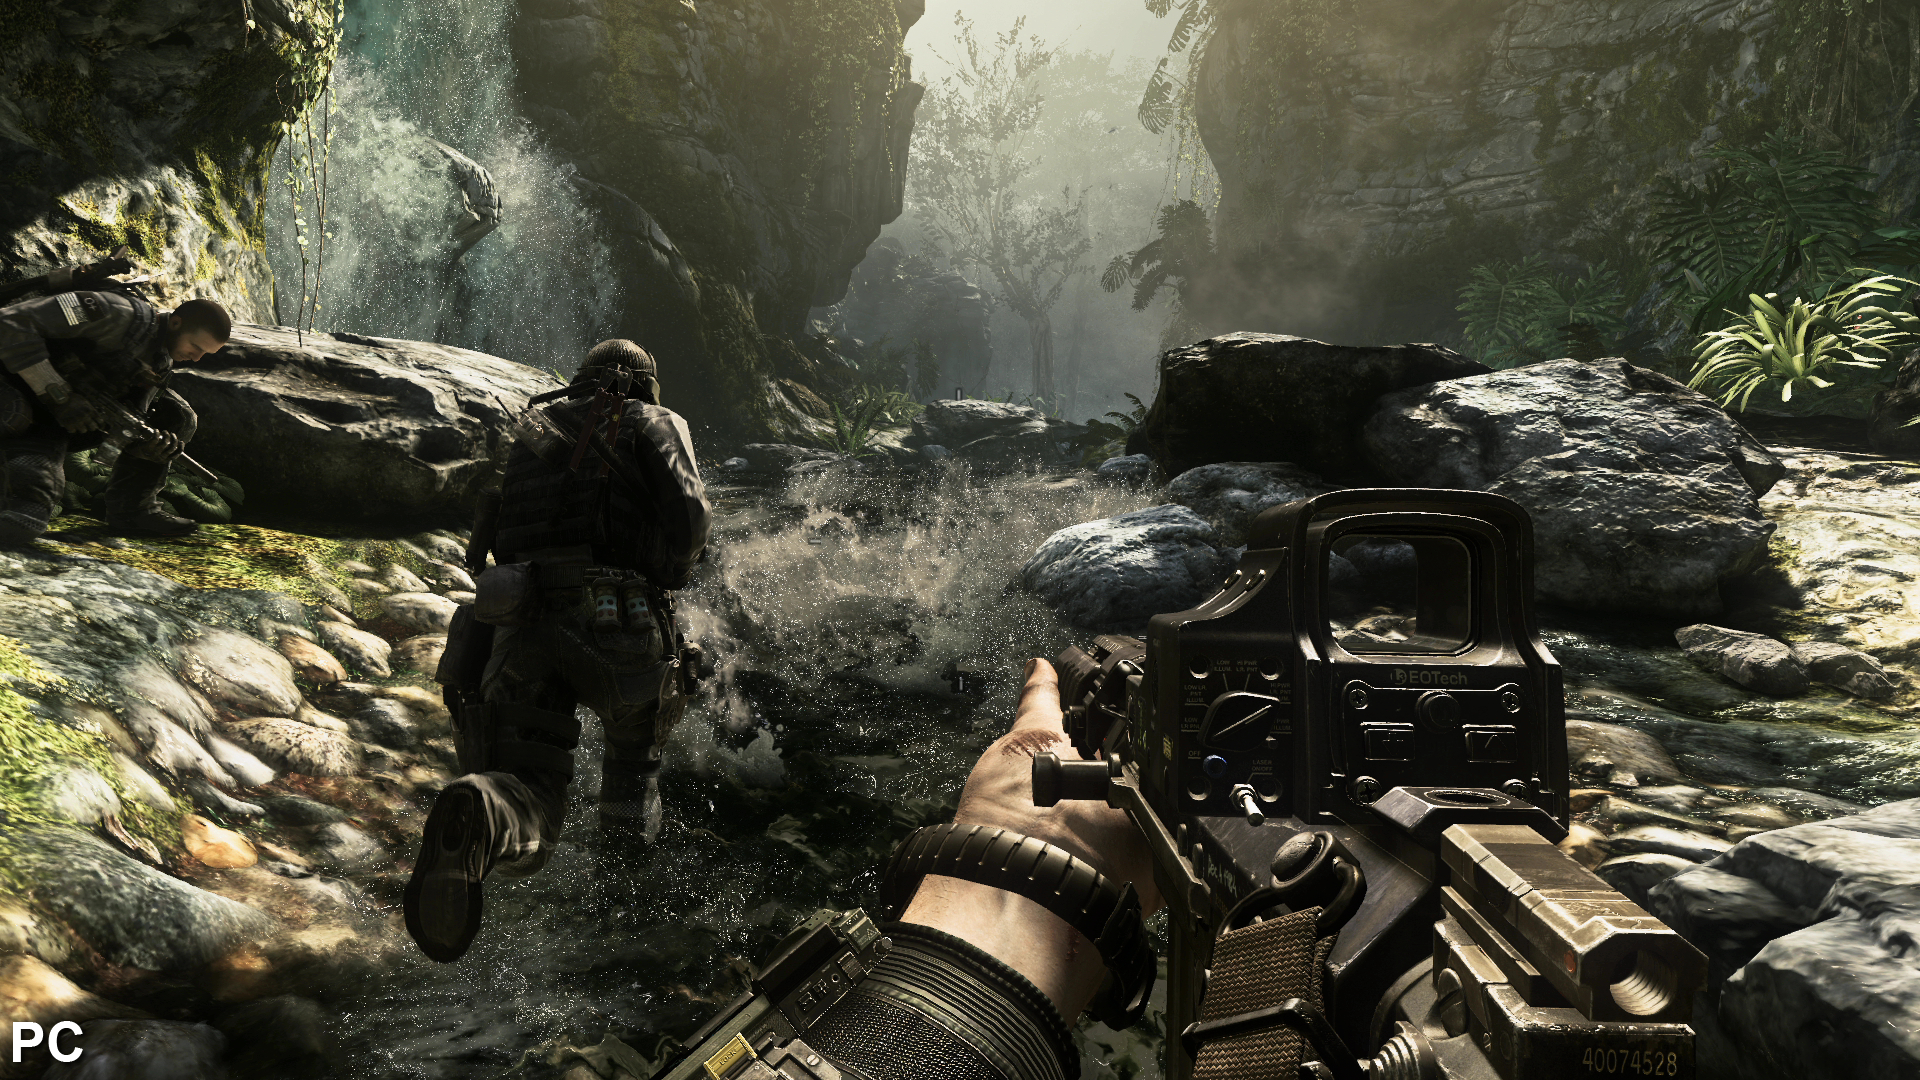 Call of Duty: Ghost: system requirements on PC